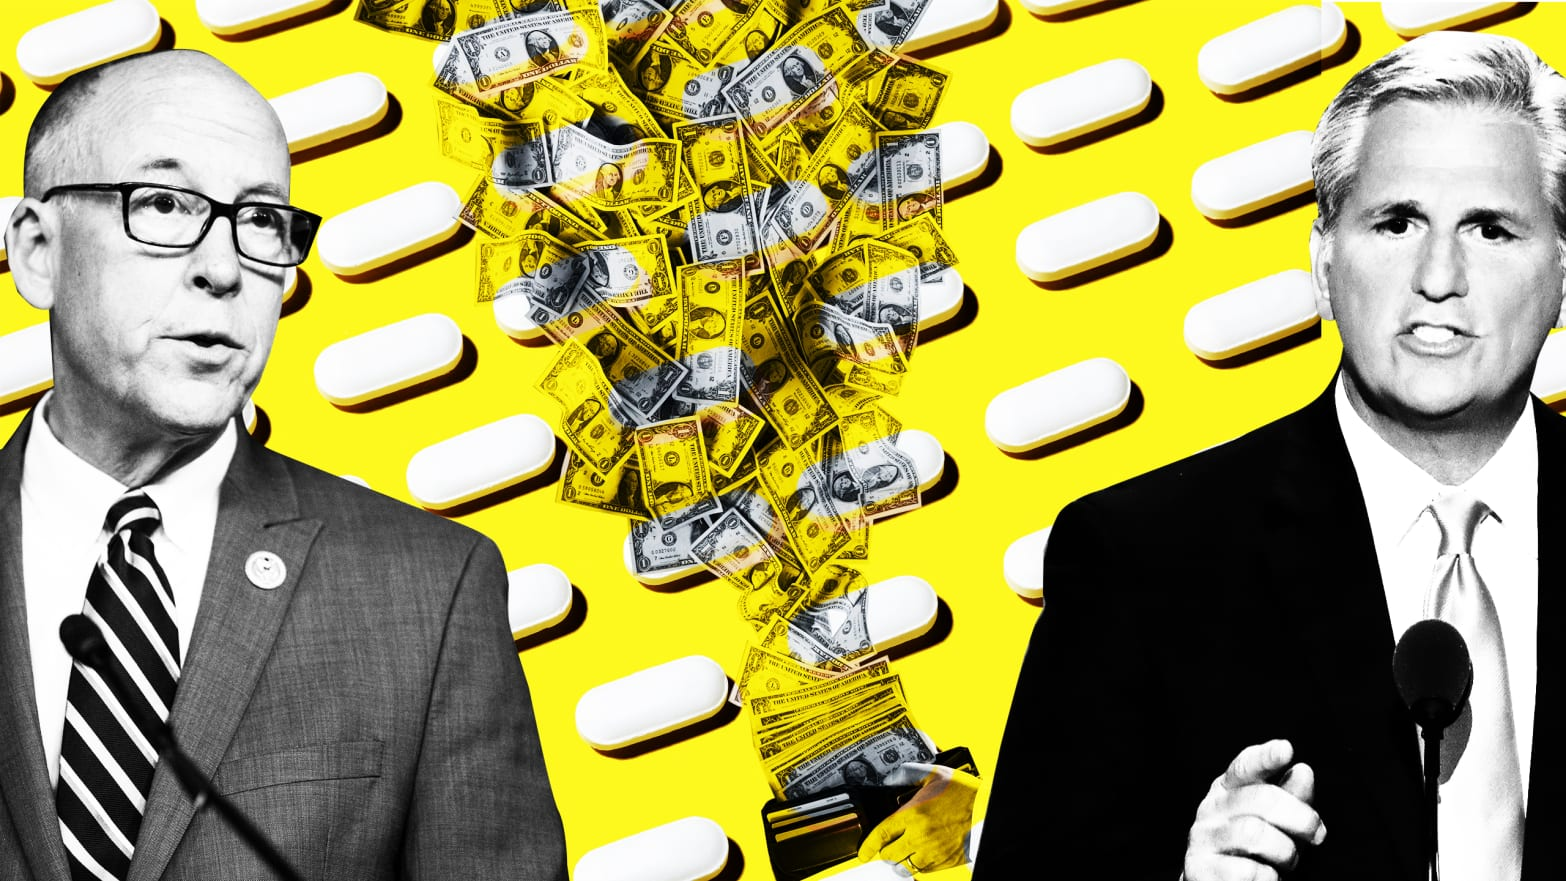 image of pills on yellow background with dollar bills flying out of wallet and Reps. Greg Walden of Oregon, a key Republican committee chairman, and Kevin McCarthy of California, the House Republican majority leader, on either side of pills